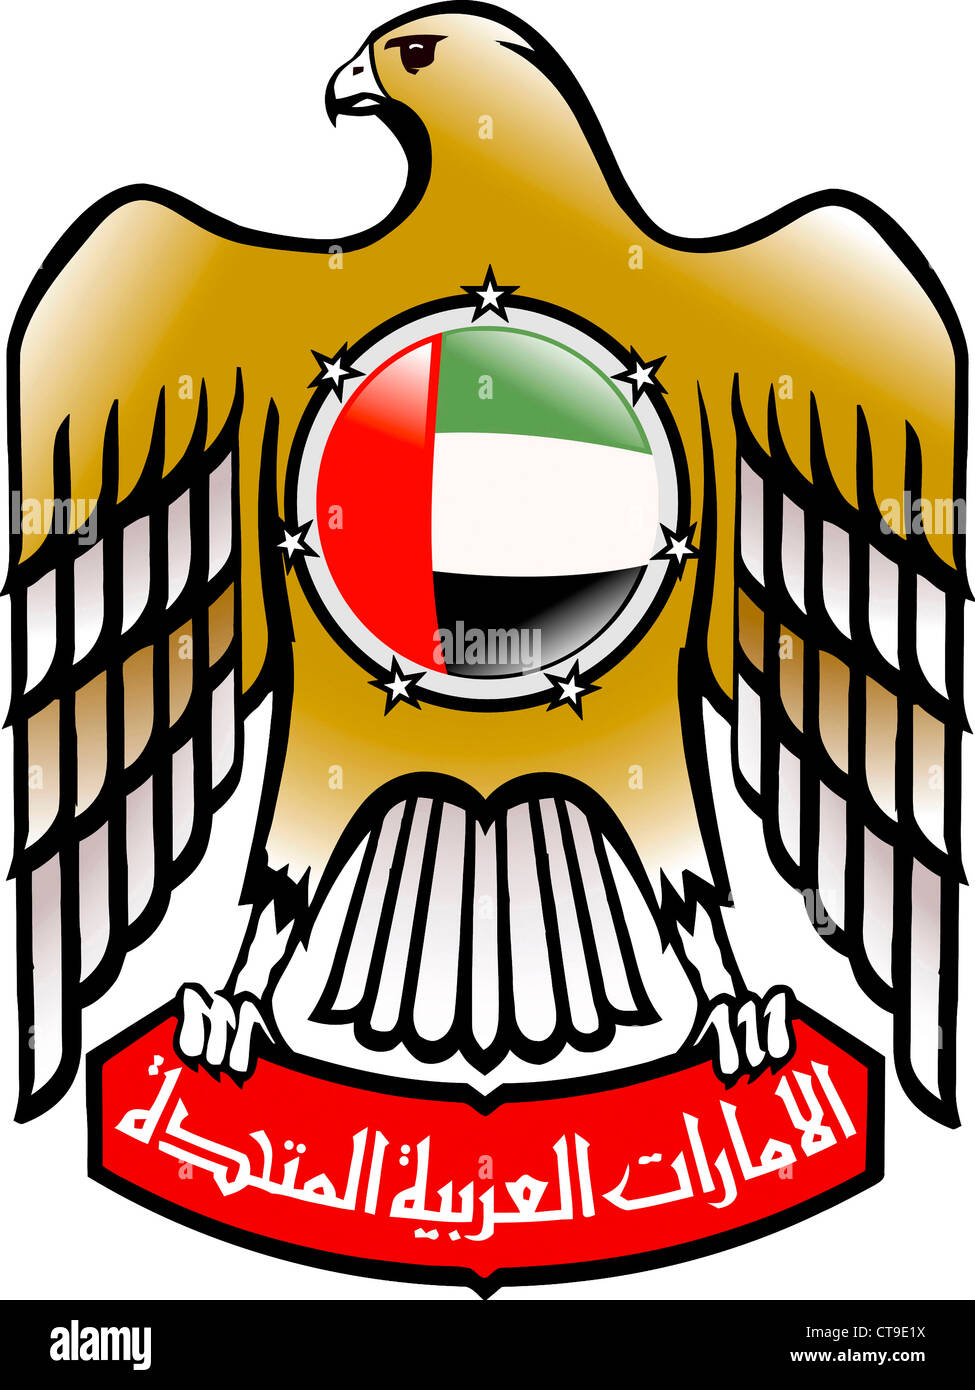 Coat of arms of the united arab emirates stock photo 49381078 alamy coat of arms of the united arab emirates biocorpaavc Images